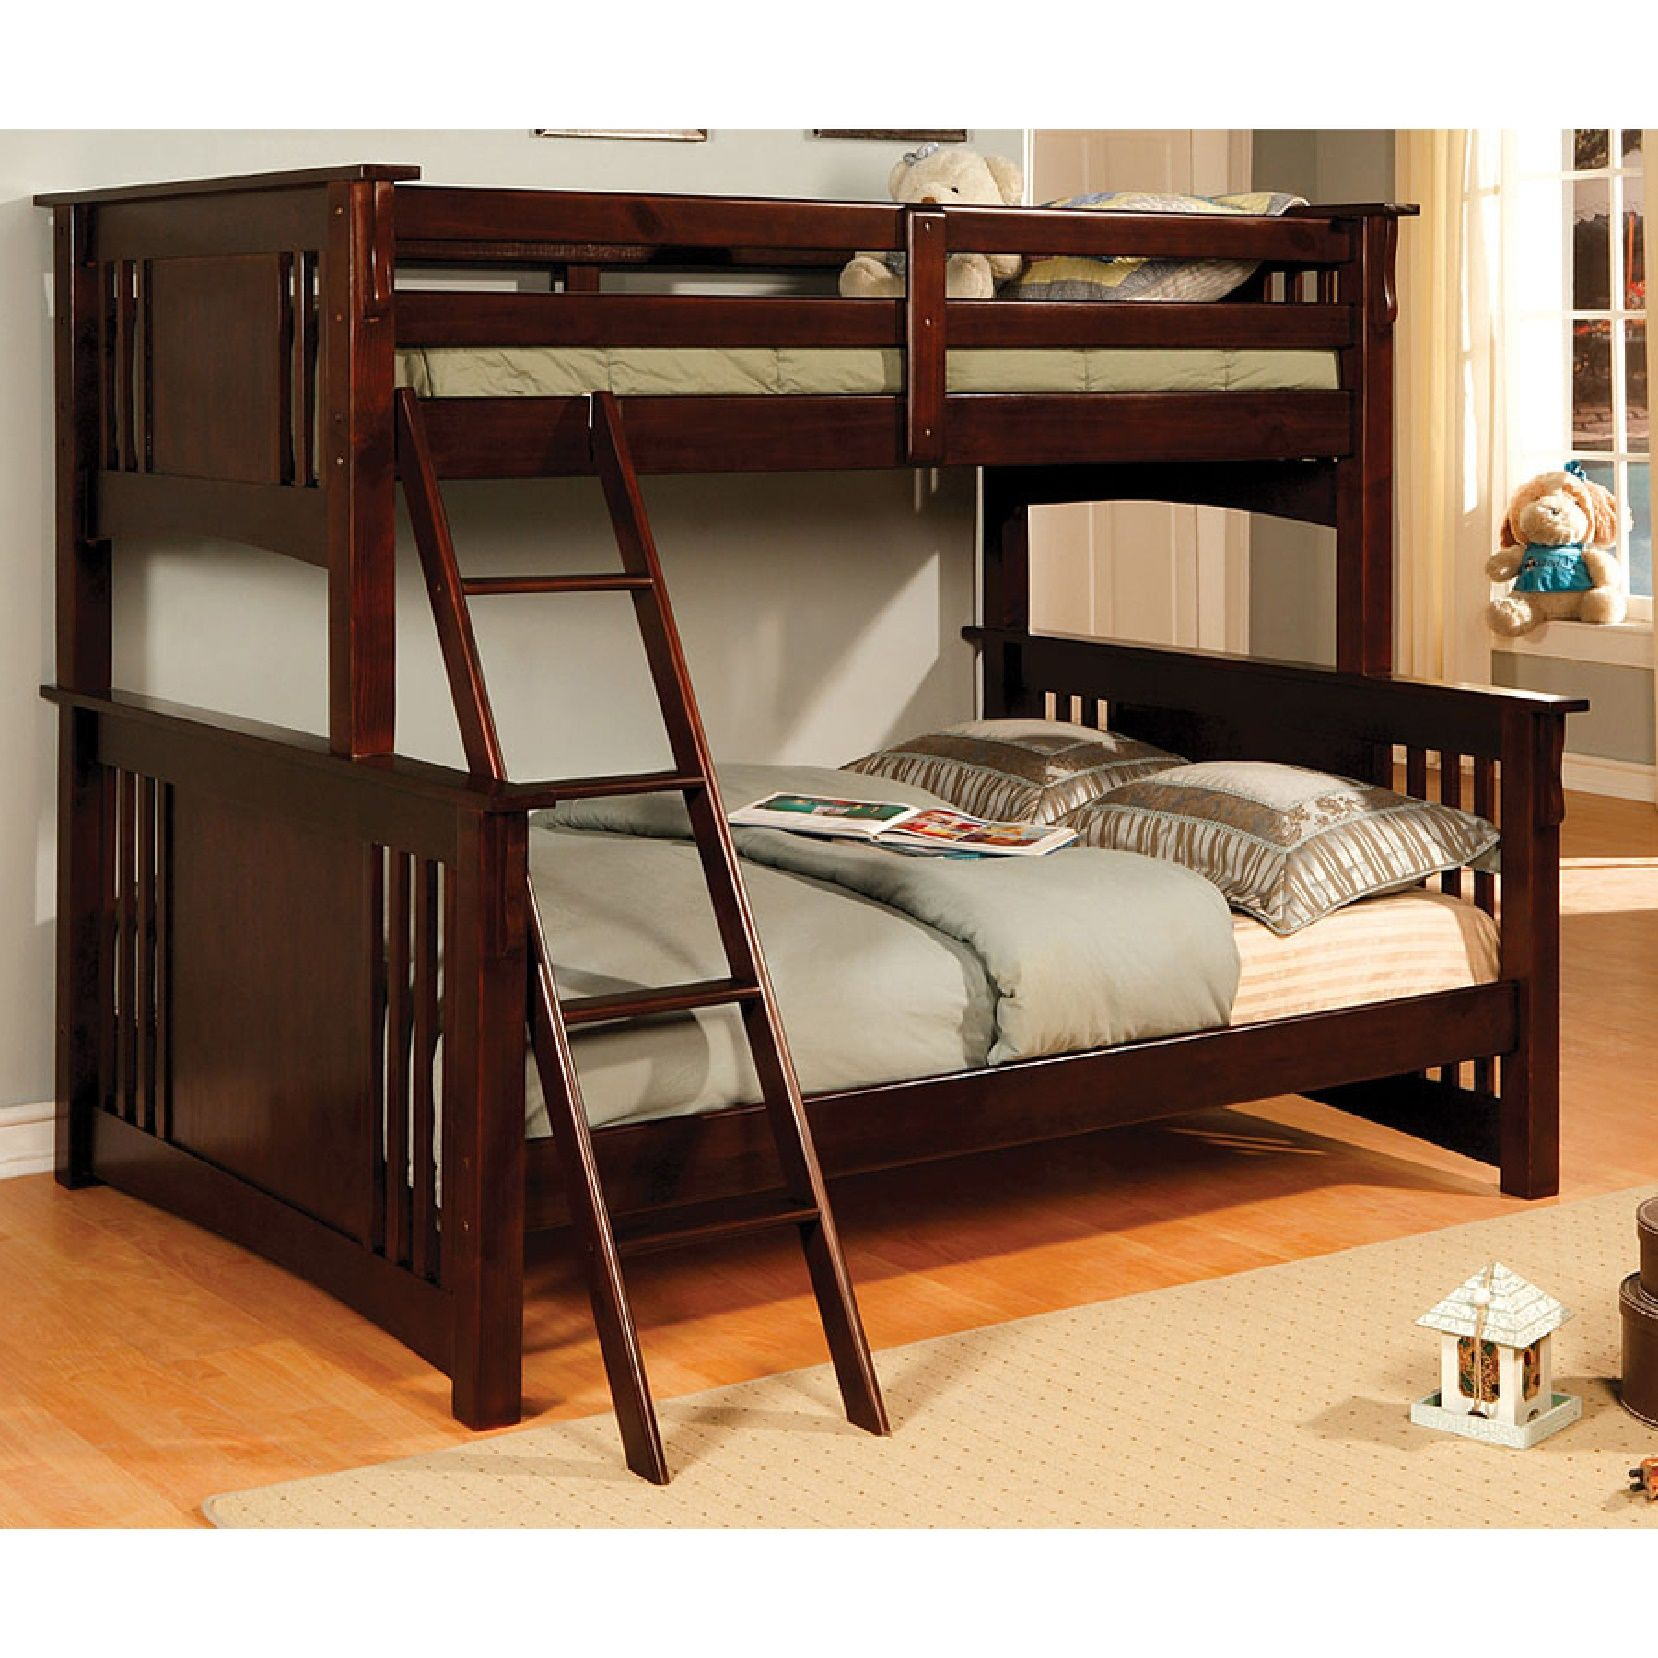 Best Bunk Bed Stores Near Me 400 x 300